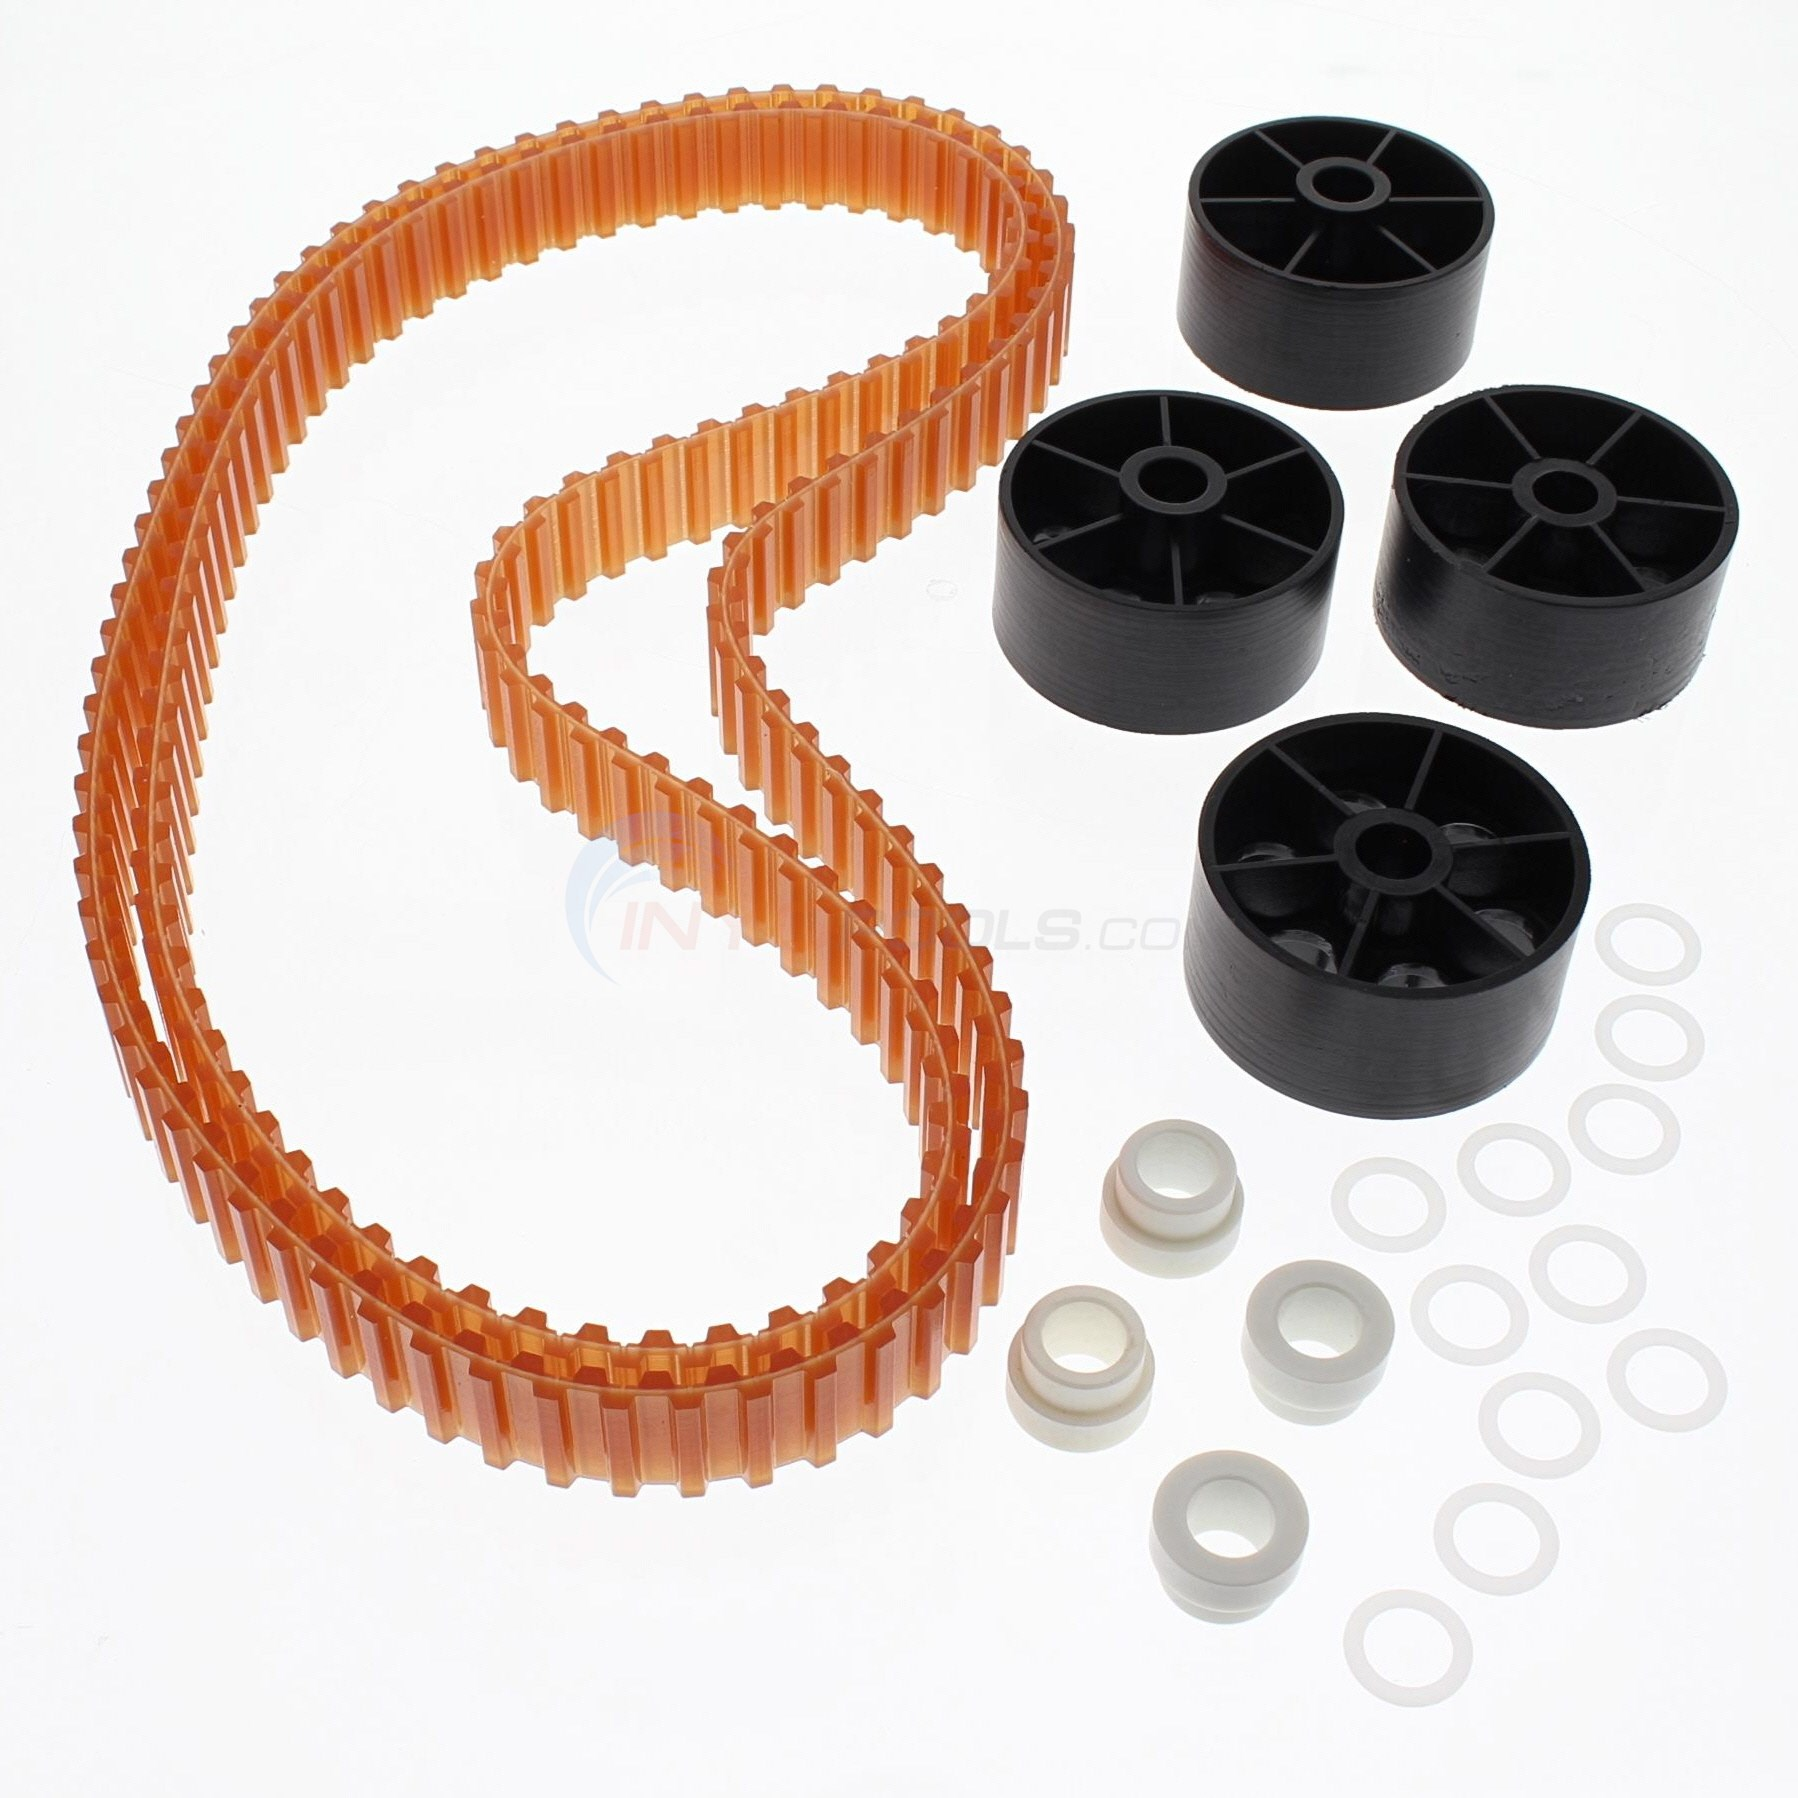 SK DRIVE BELT SET; DMX DRIVE BELT (2), ROLLERS, WASHERS; (1/1/EA)